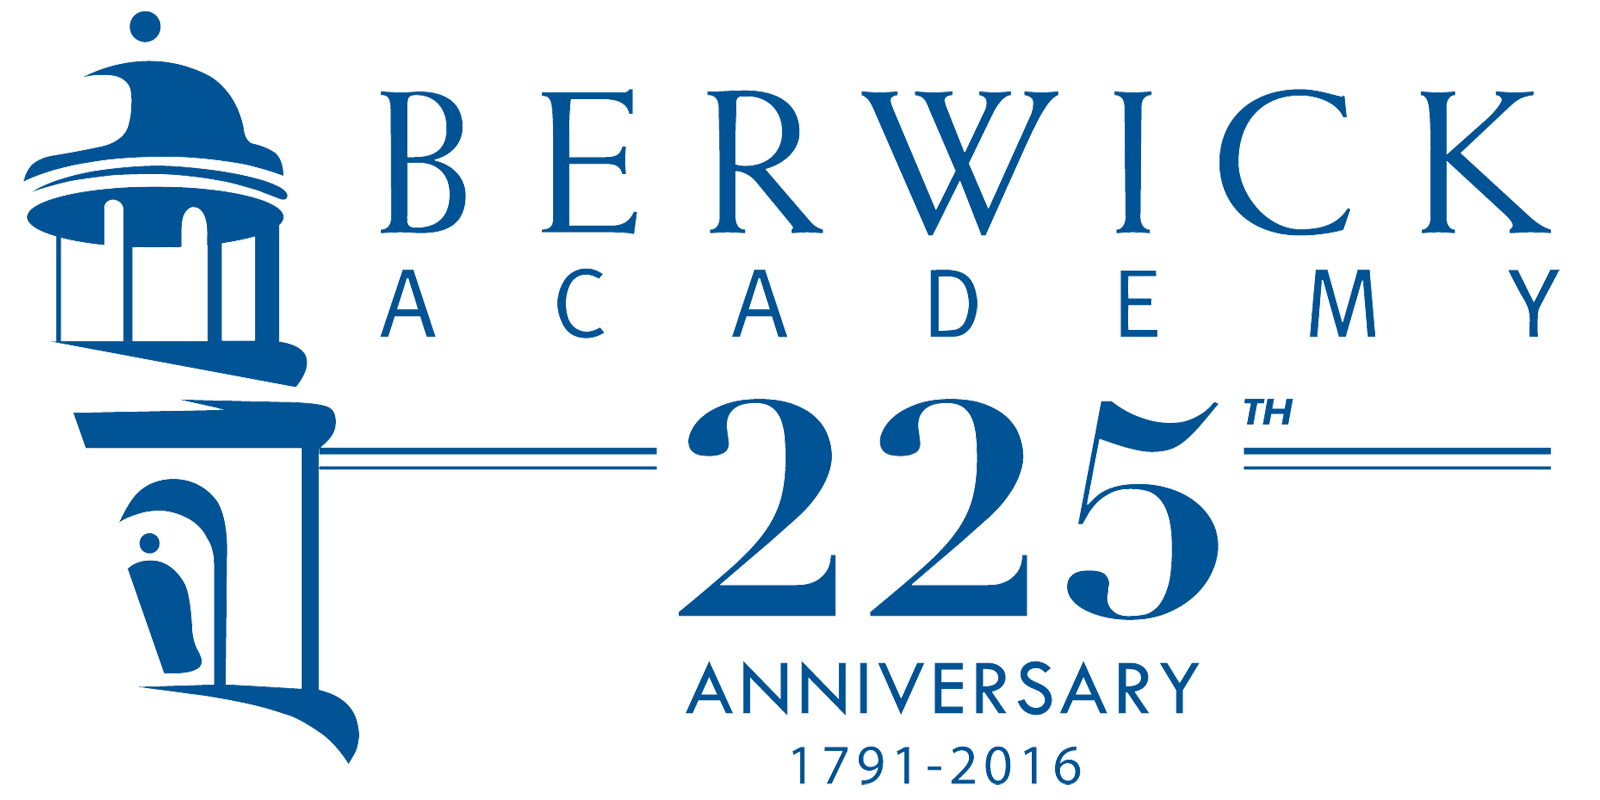 Berwick - Pre-K through Grade 12 | Promoting Virtue and Useful Knowledge